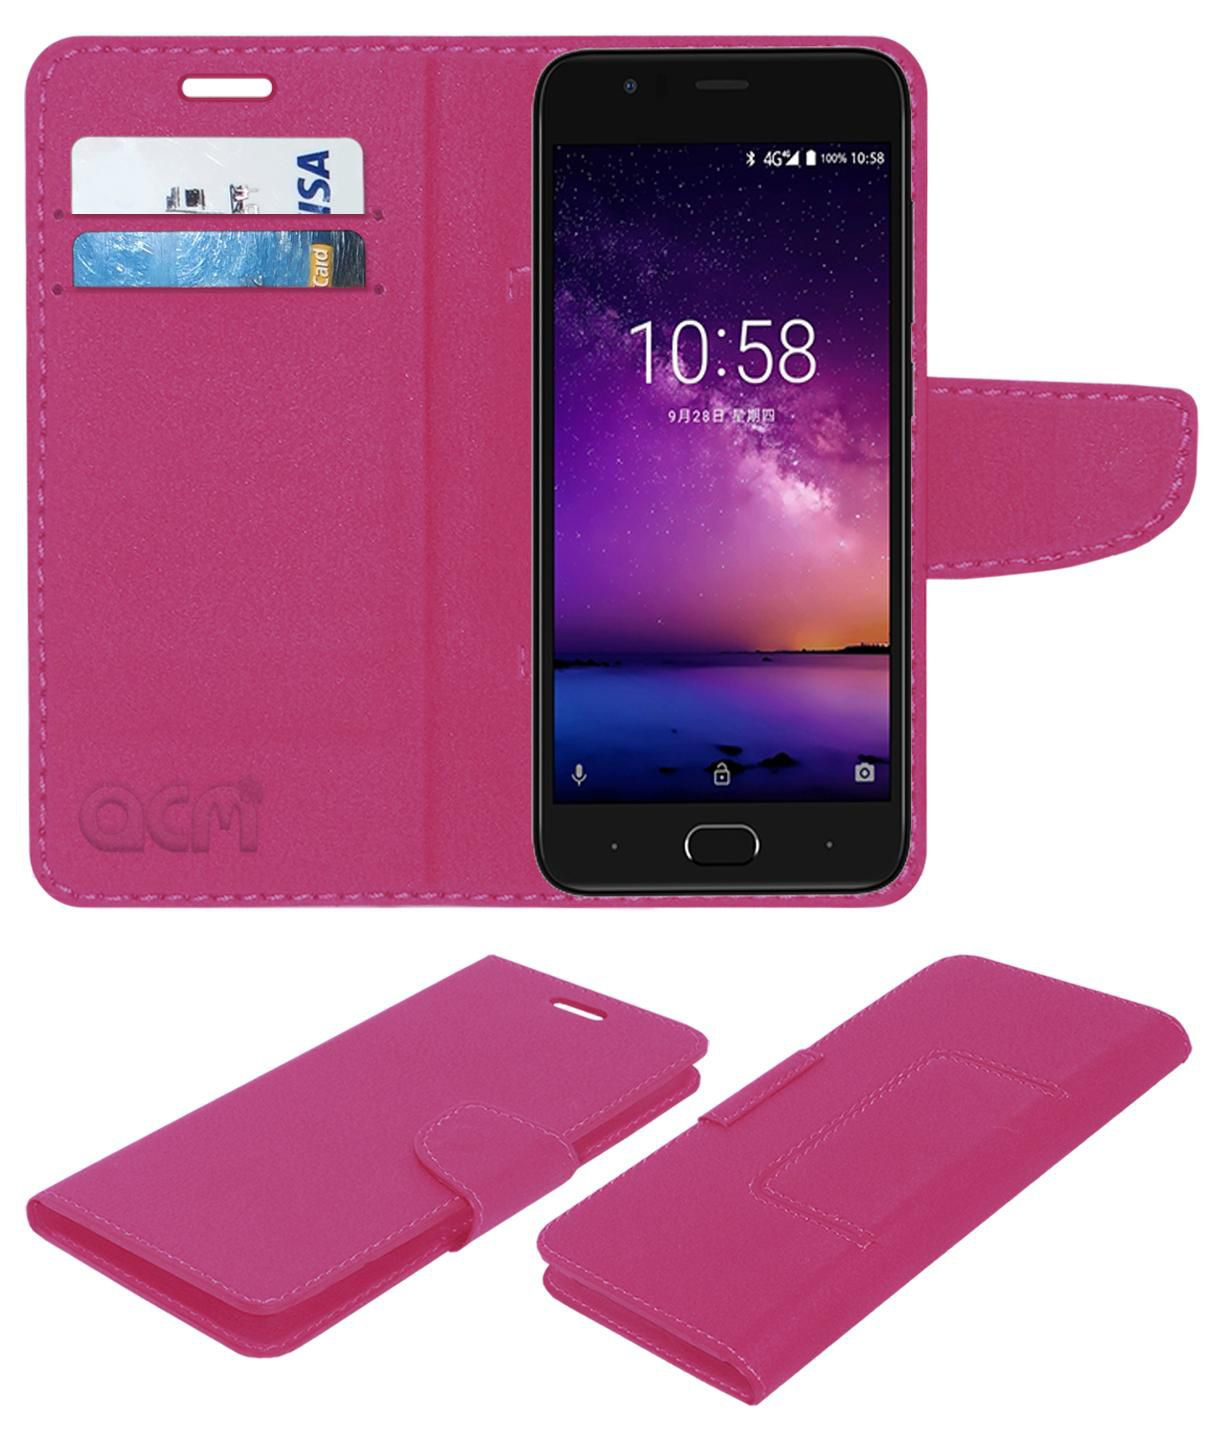 outlet store 755e1 92a86 InFocus A3 Flip Cover by ACM - Pink